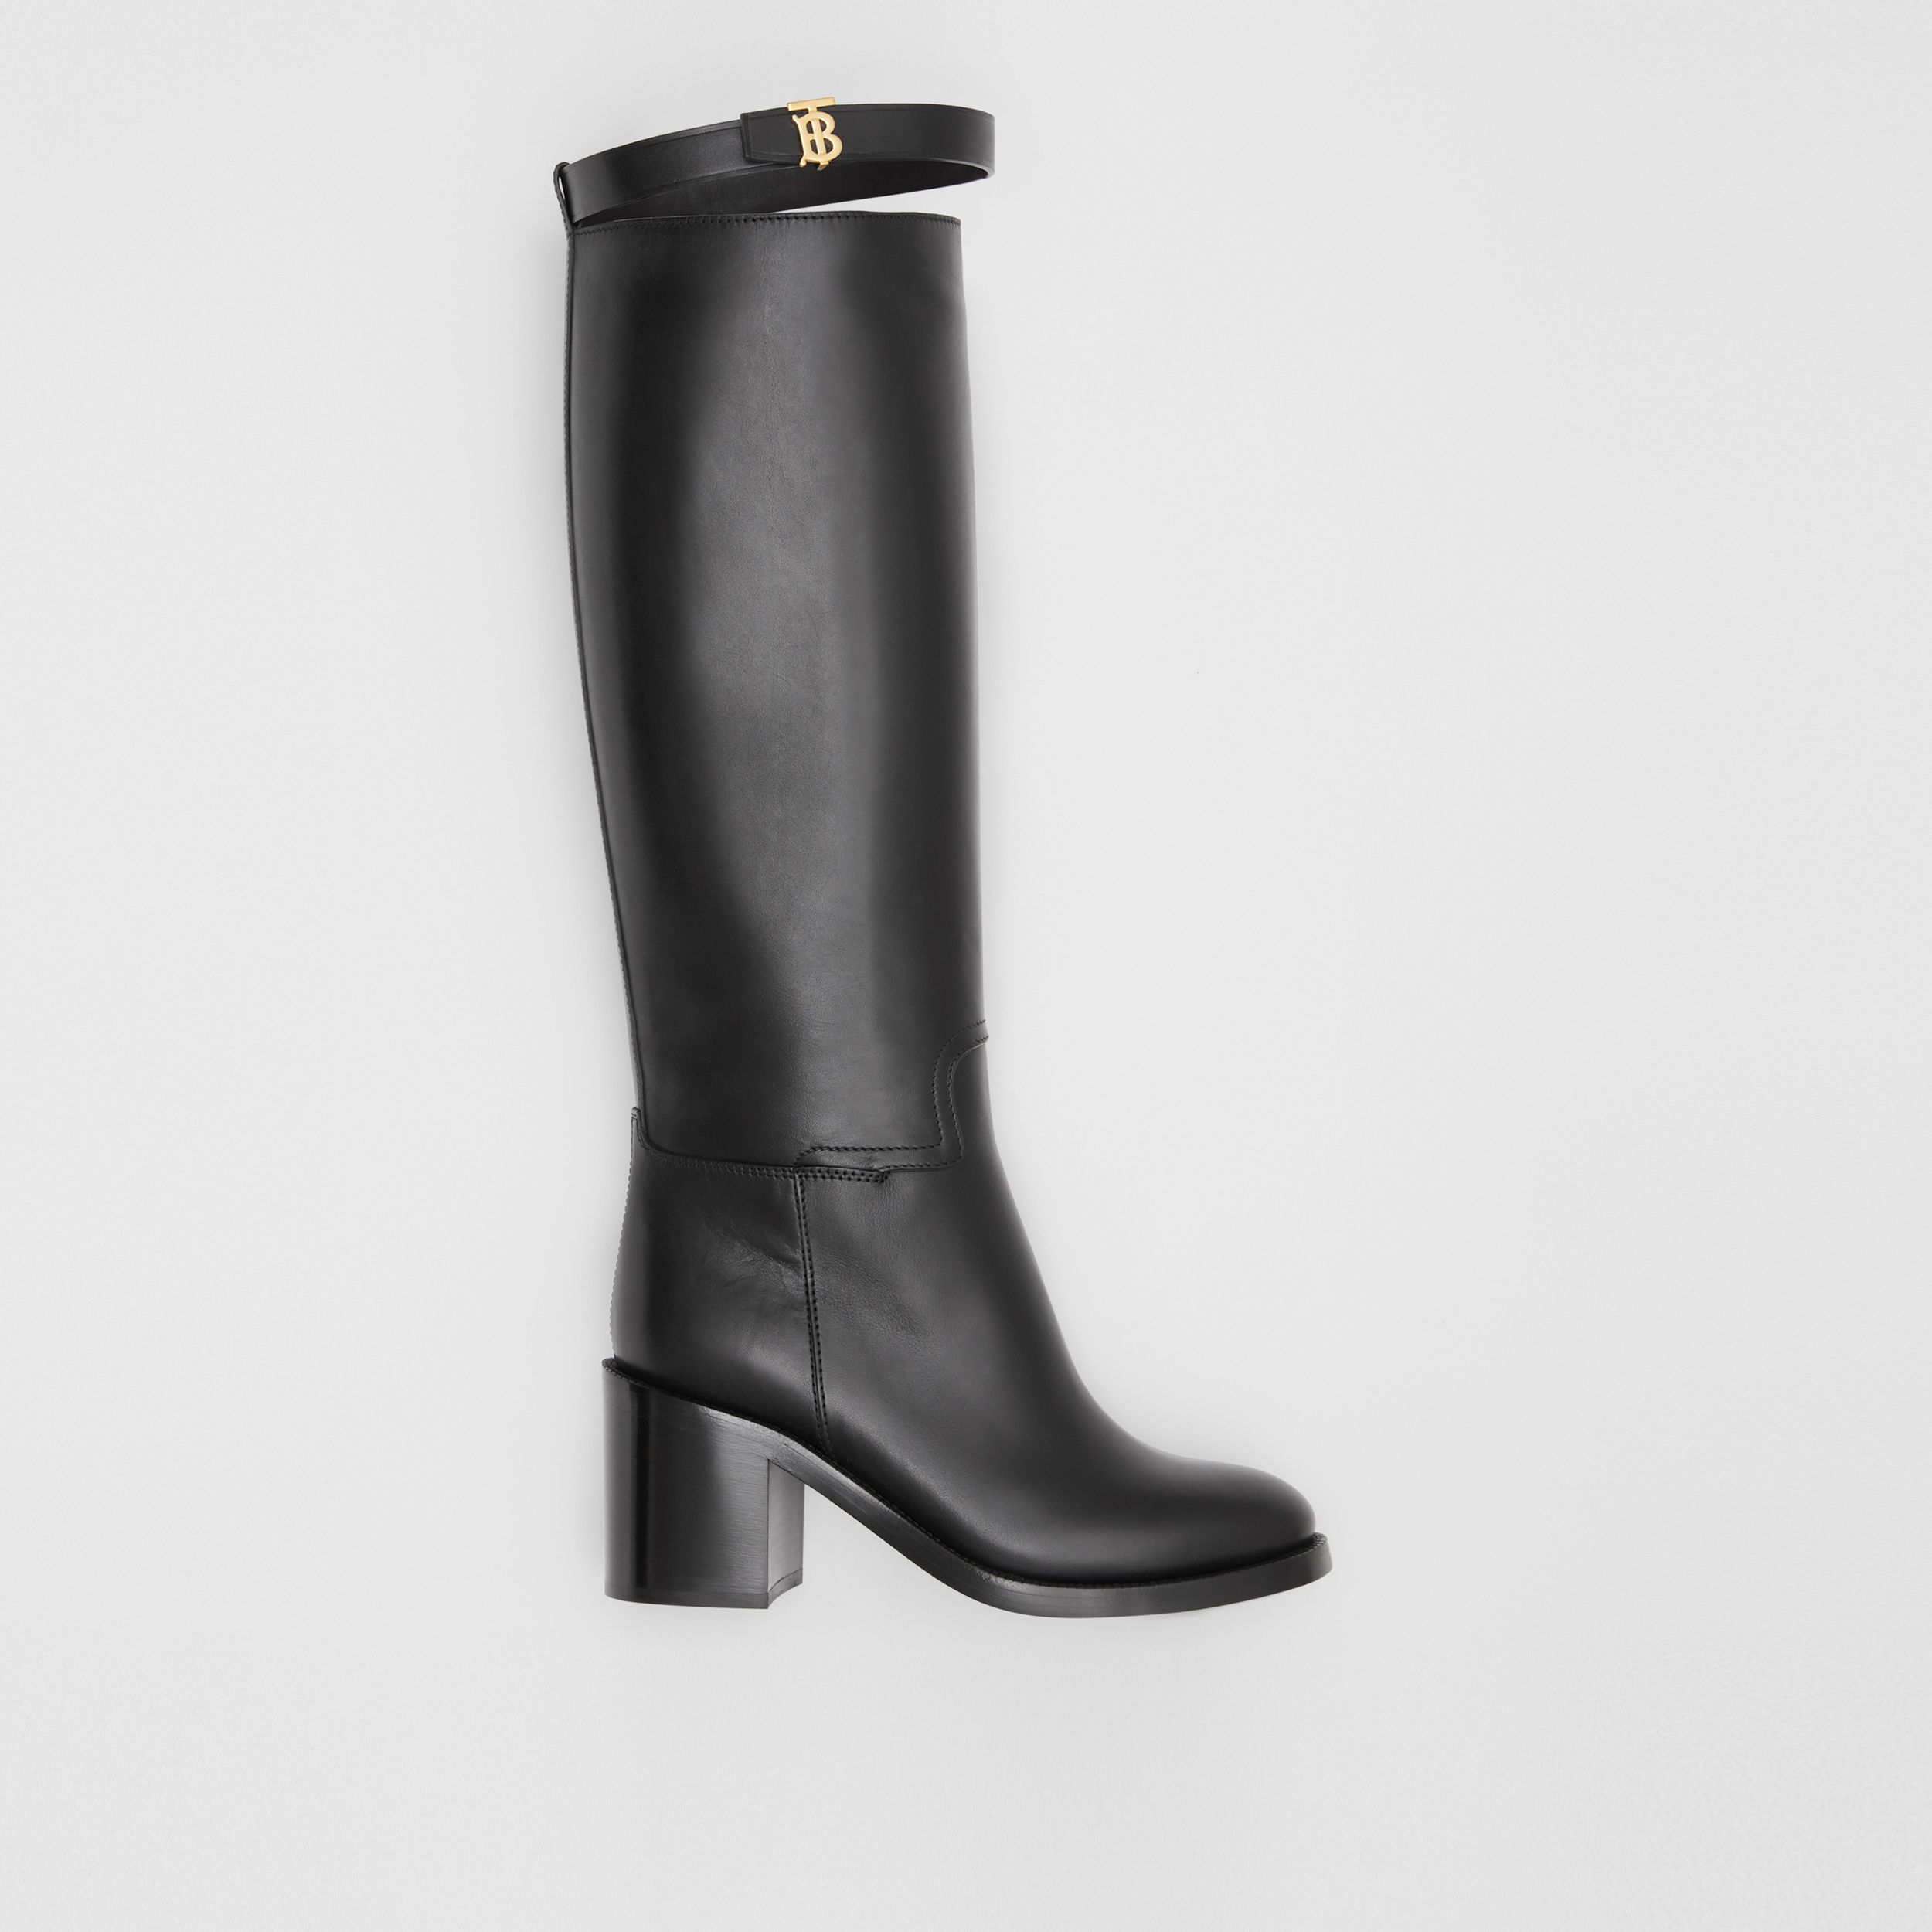 Monogram Motif Leather Knee-high Boots in Black - Women | Burberry - 1